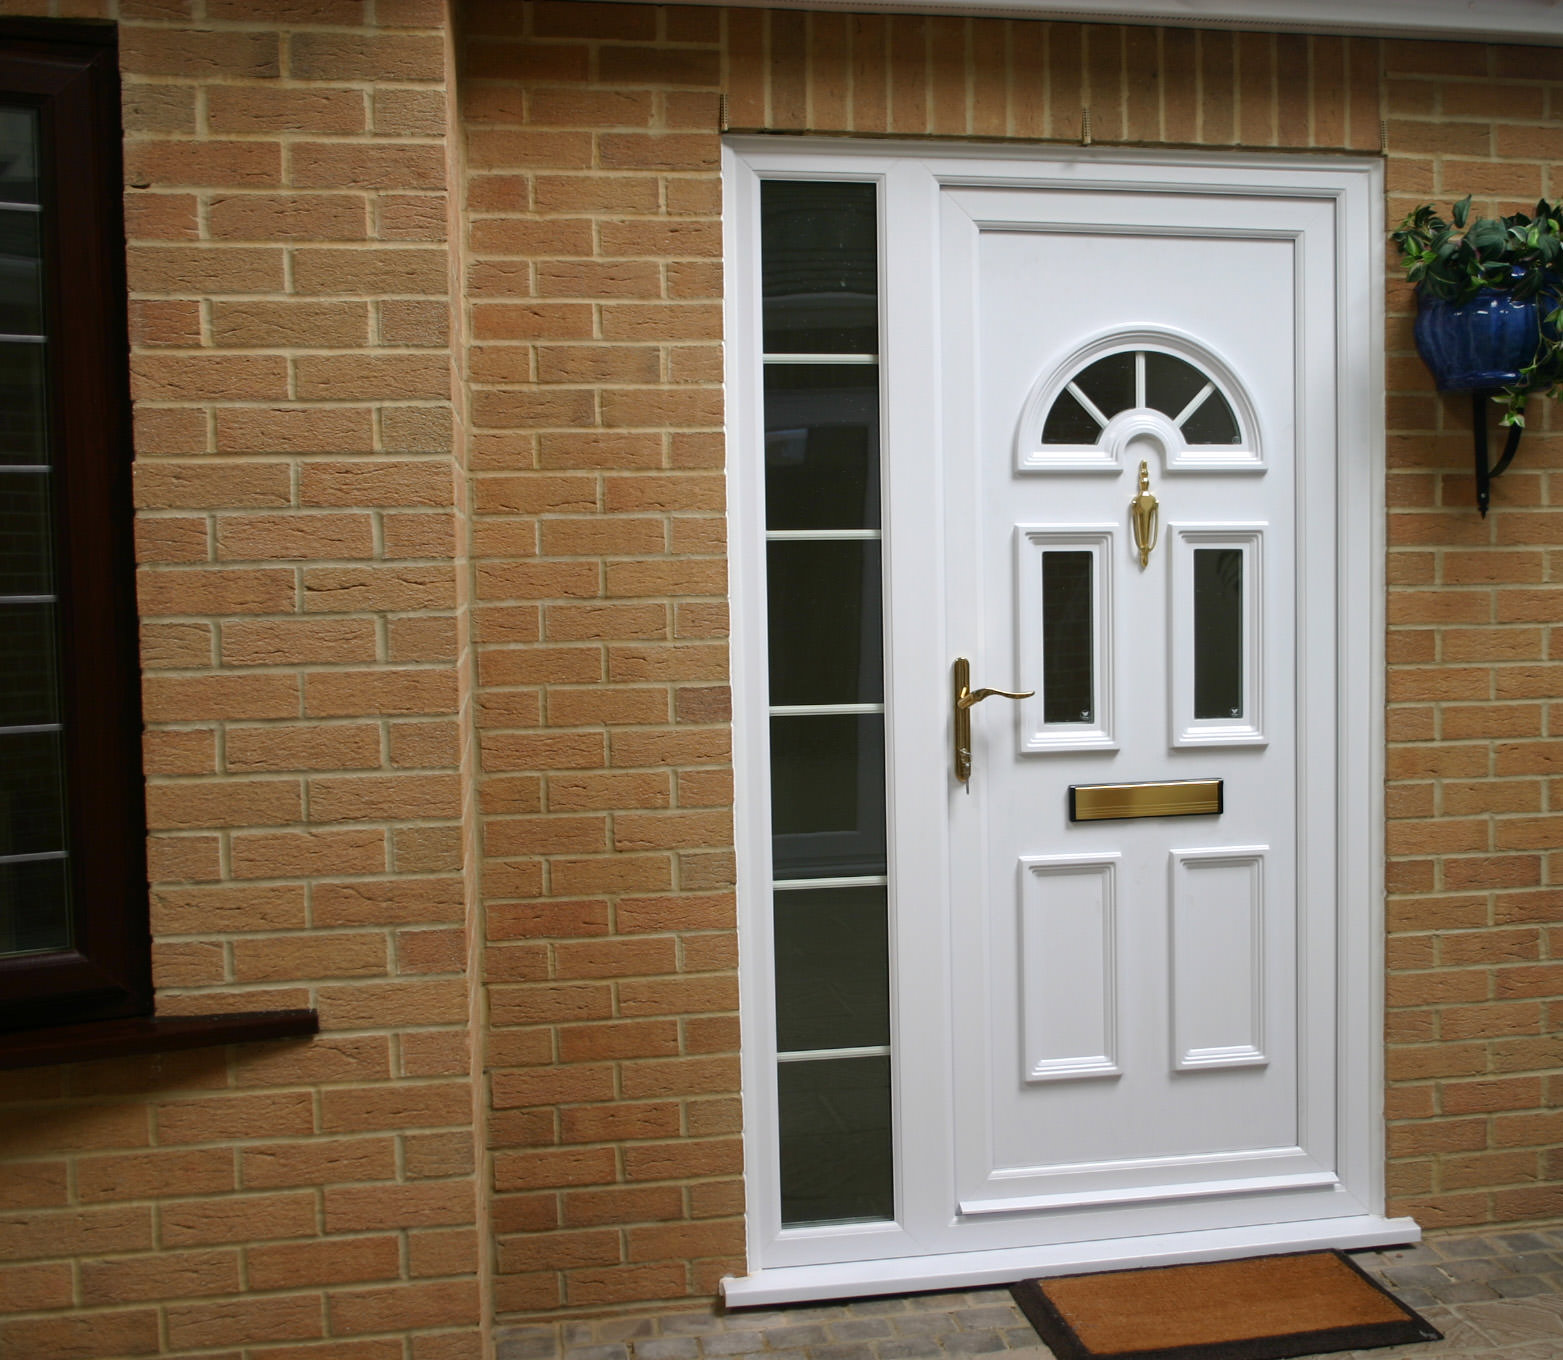 Upvc doors harrogate double glazed doors front door for Wooden front doors fitted